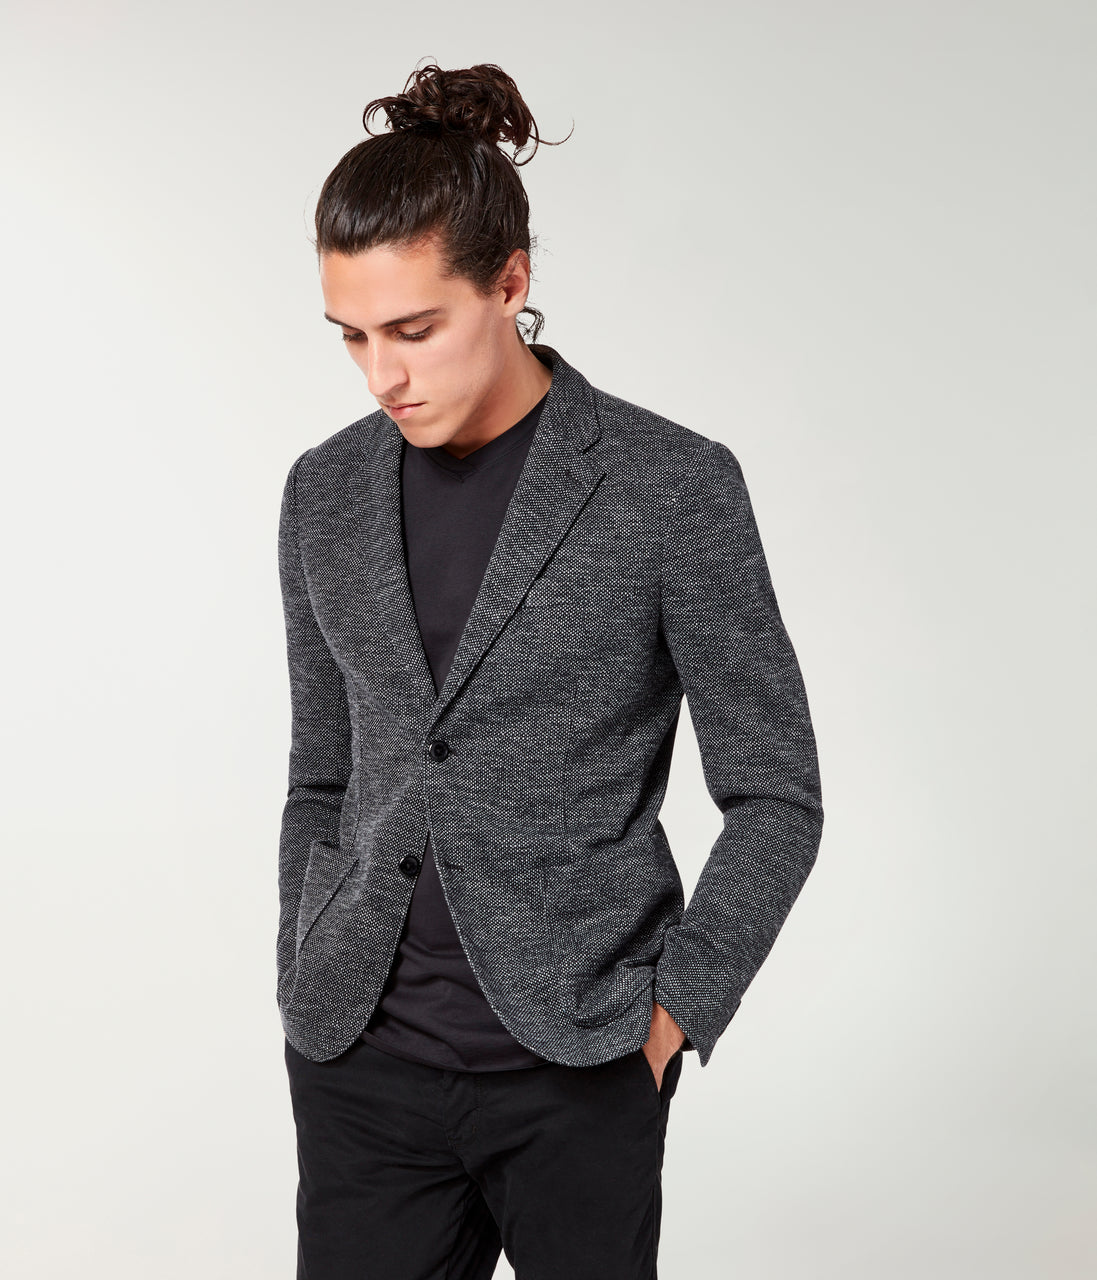 Bi-Color Birdseye Soft Blazer - Black - Good Man Brand - Bi-Color Birdseye Soft Blazer - Black